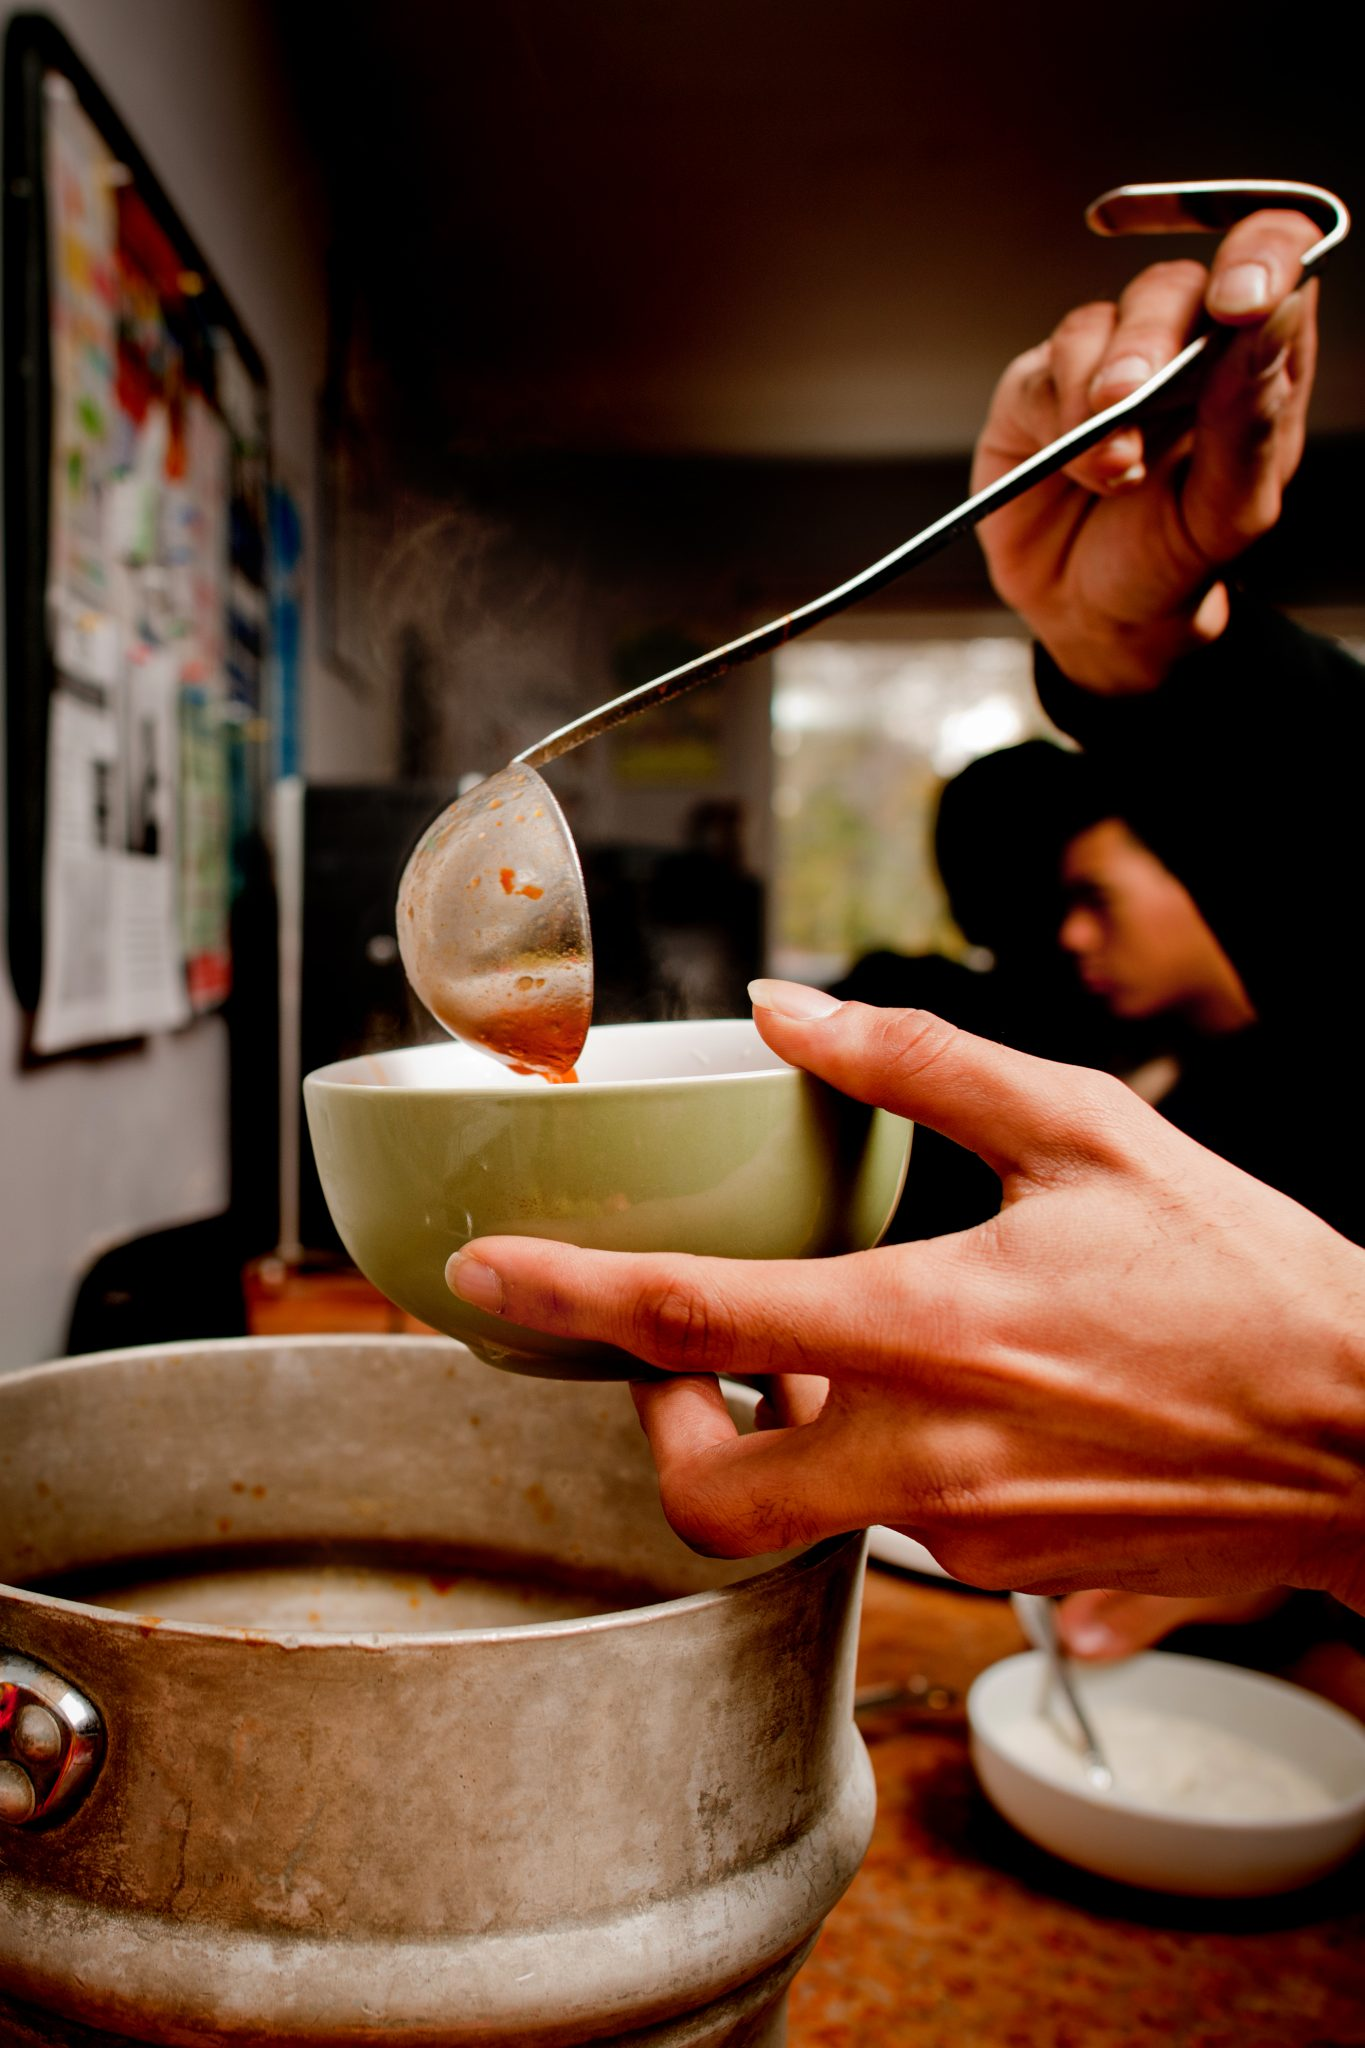 A ladle pours soup into a bowl held in a hand over a pot.